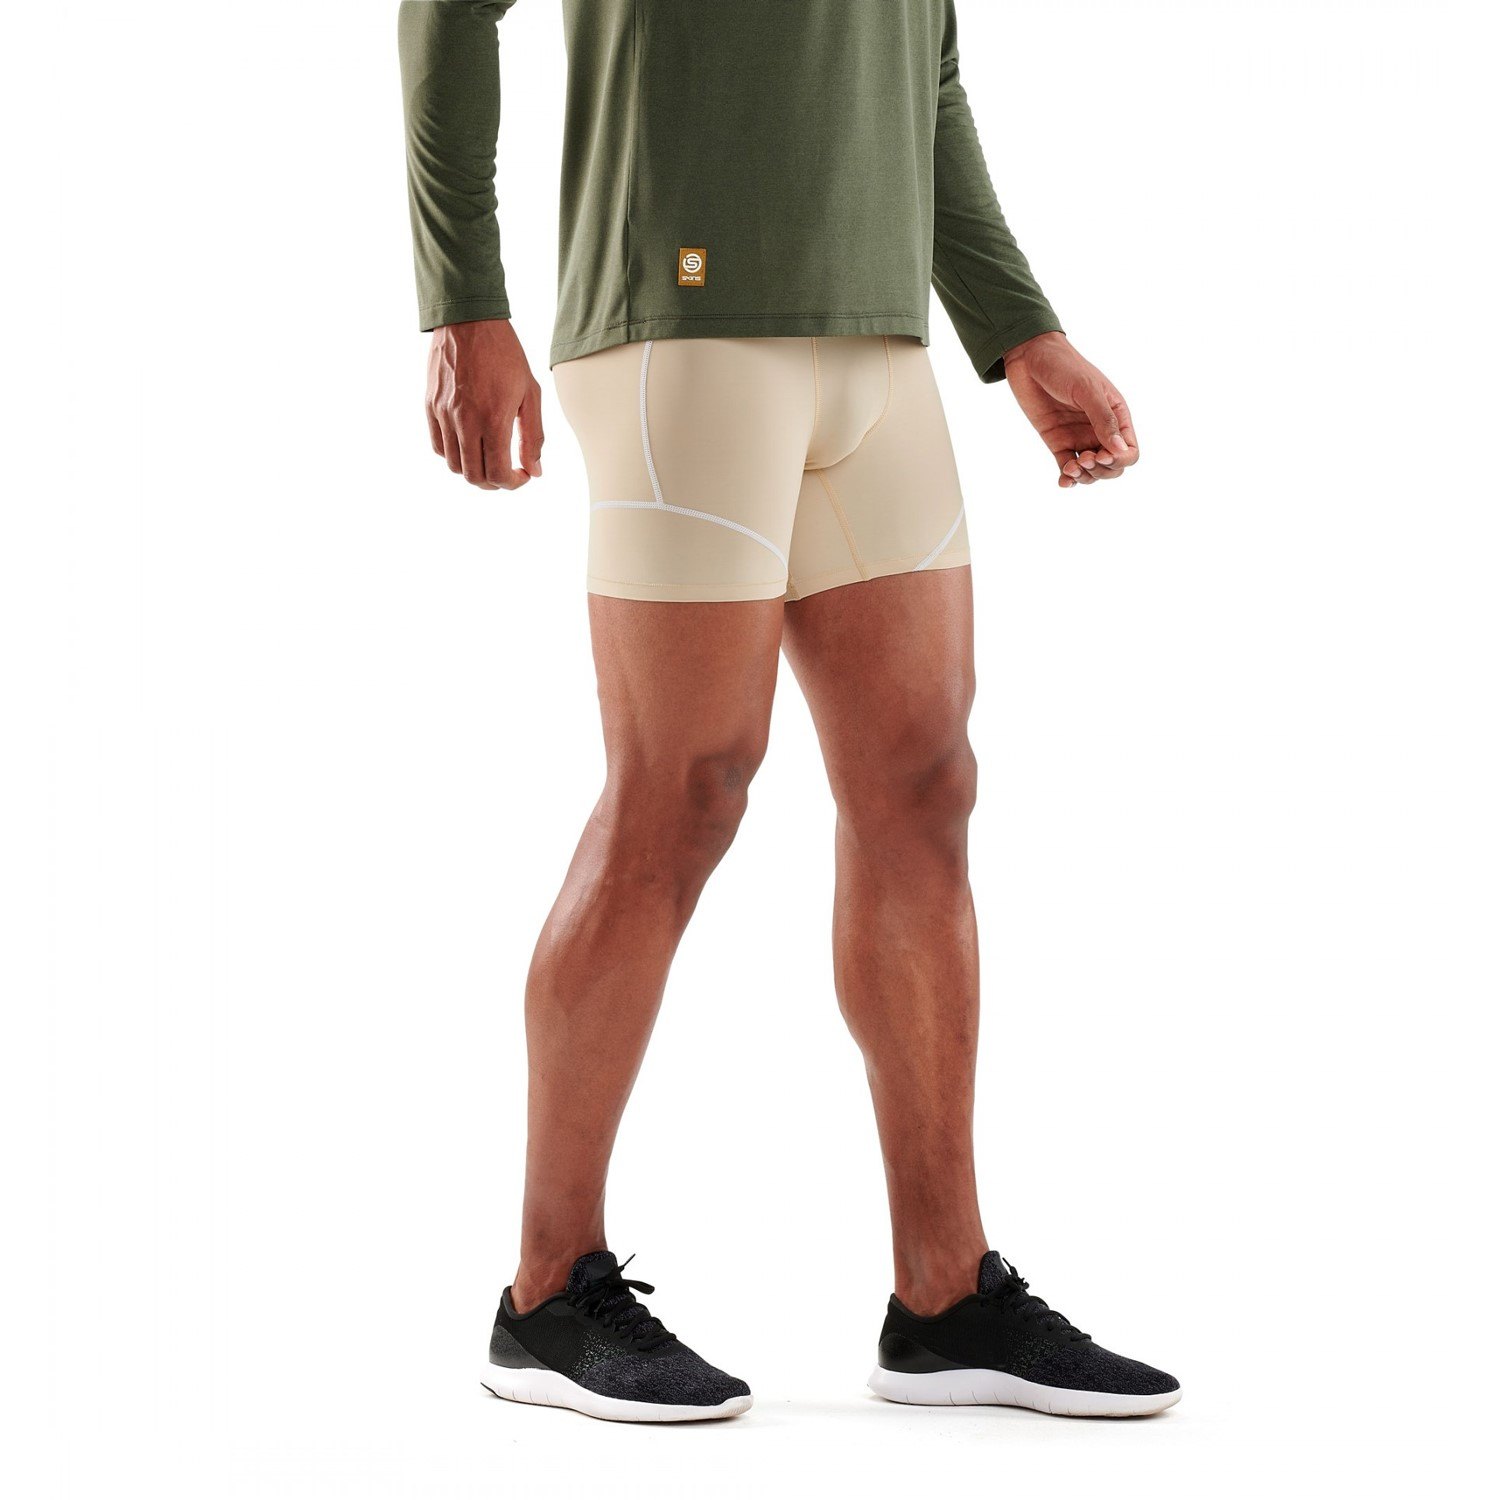 1708f21b14 Skins DNAmic Team Mens Compression Shorts - Neutral | Sportitude